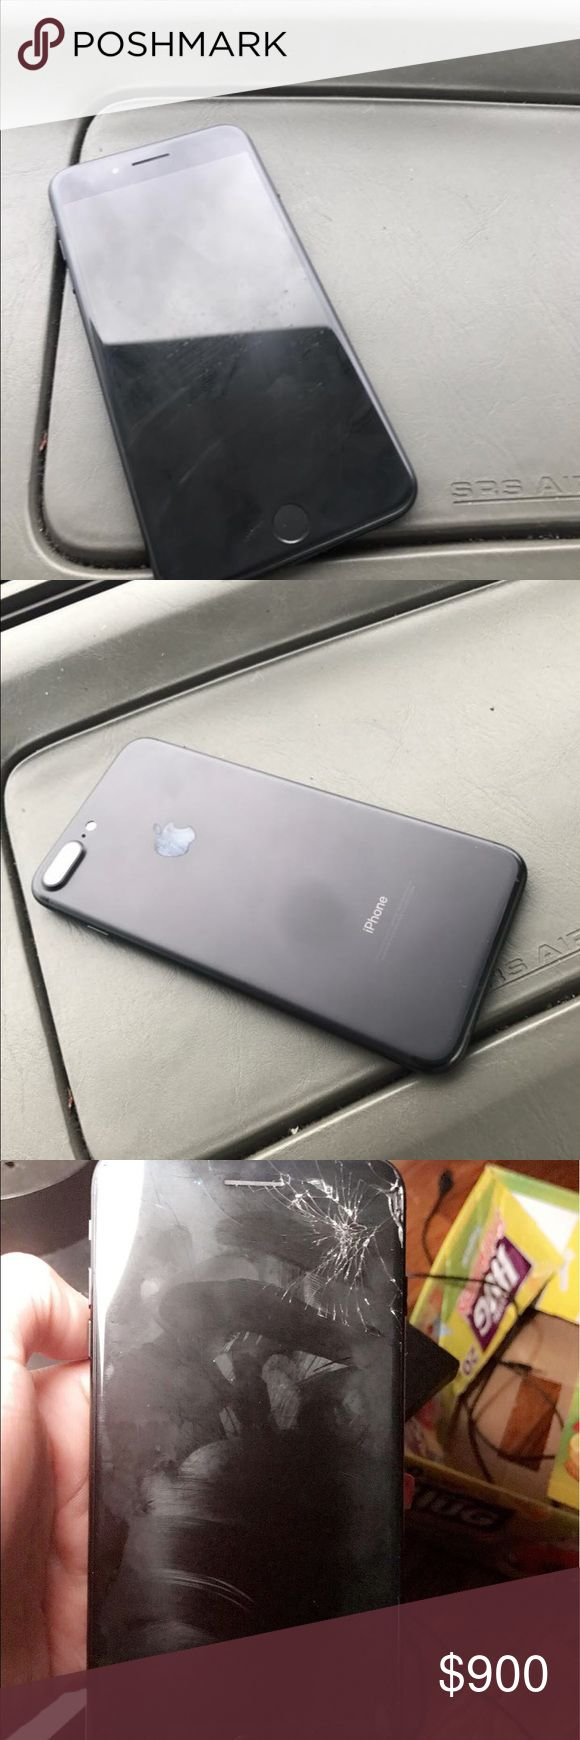 I'm selling two iPhone 7 plus on sprint I have two iPhone 7 plus that 128 one is yet black and the other one is black and the yet black is in good condition and the black it's on fair condition I want $400 for the yet black one and the other $260 Other